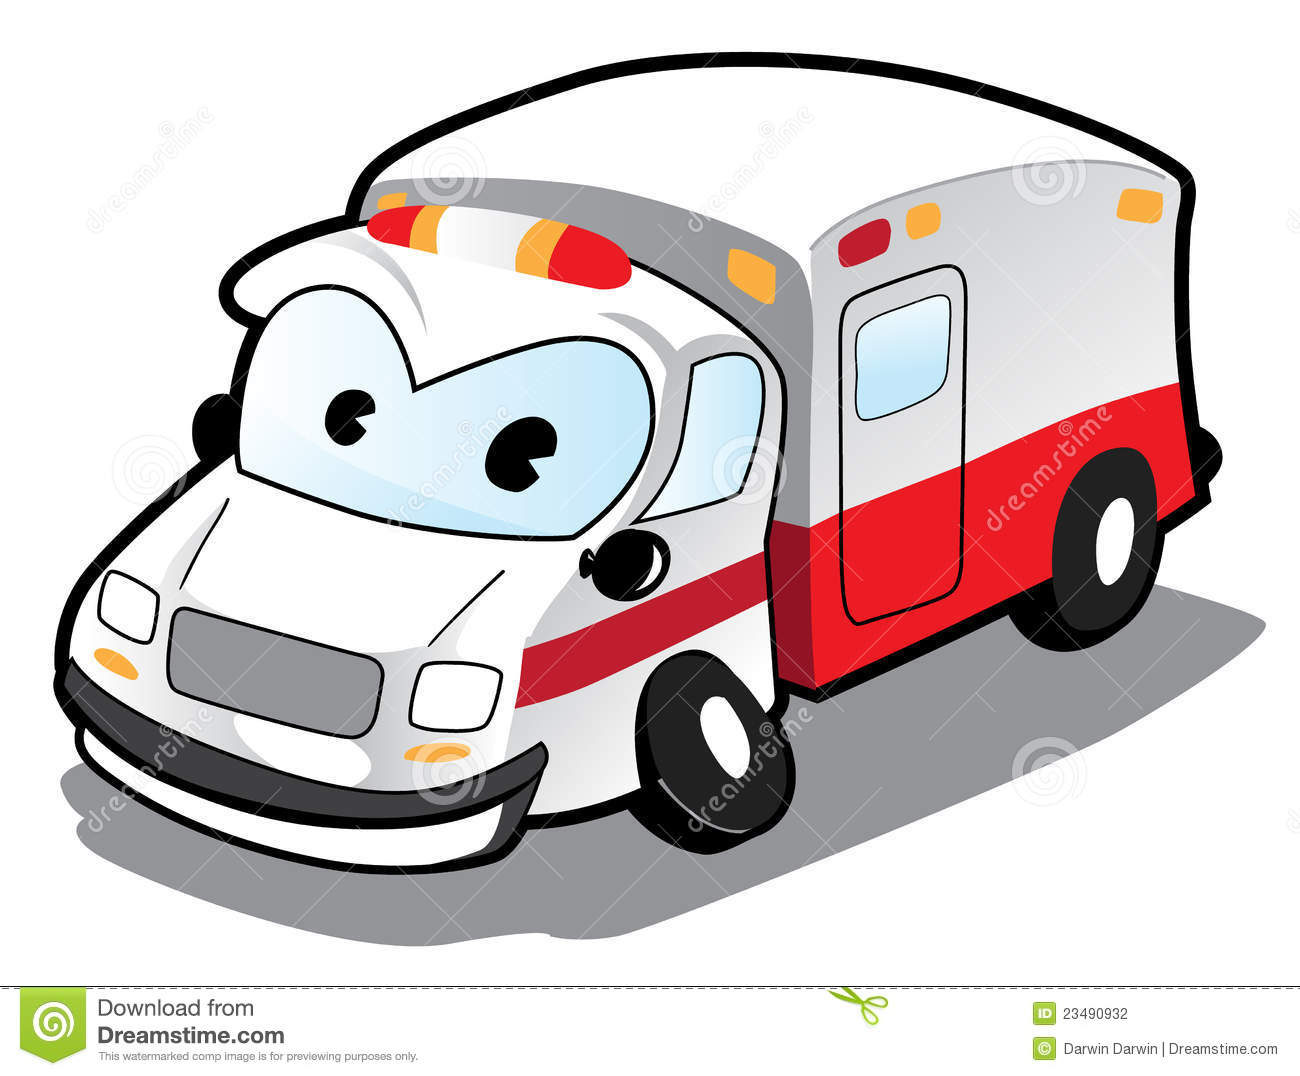 Ambulance de dessin anim illustration de vecteur illustration du h pital 23490932 - Dessin ambulance ...